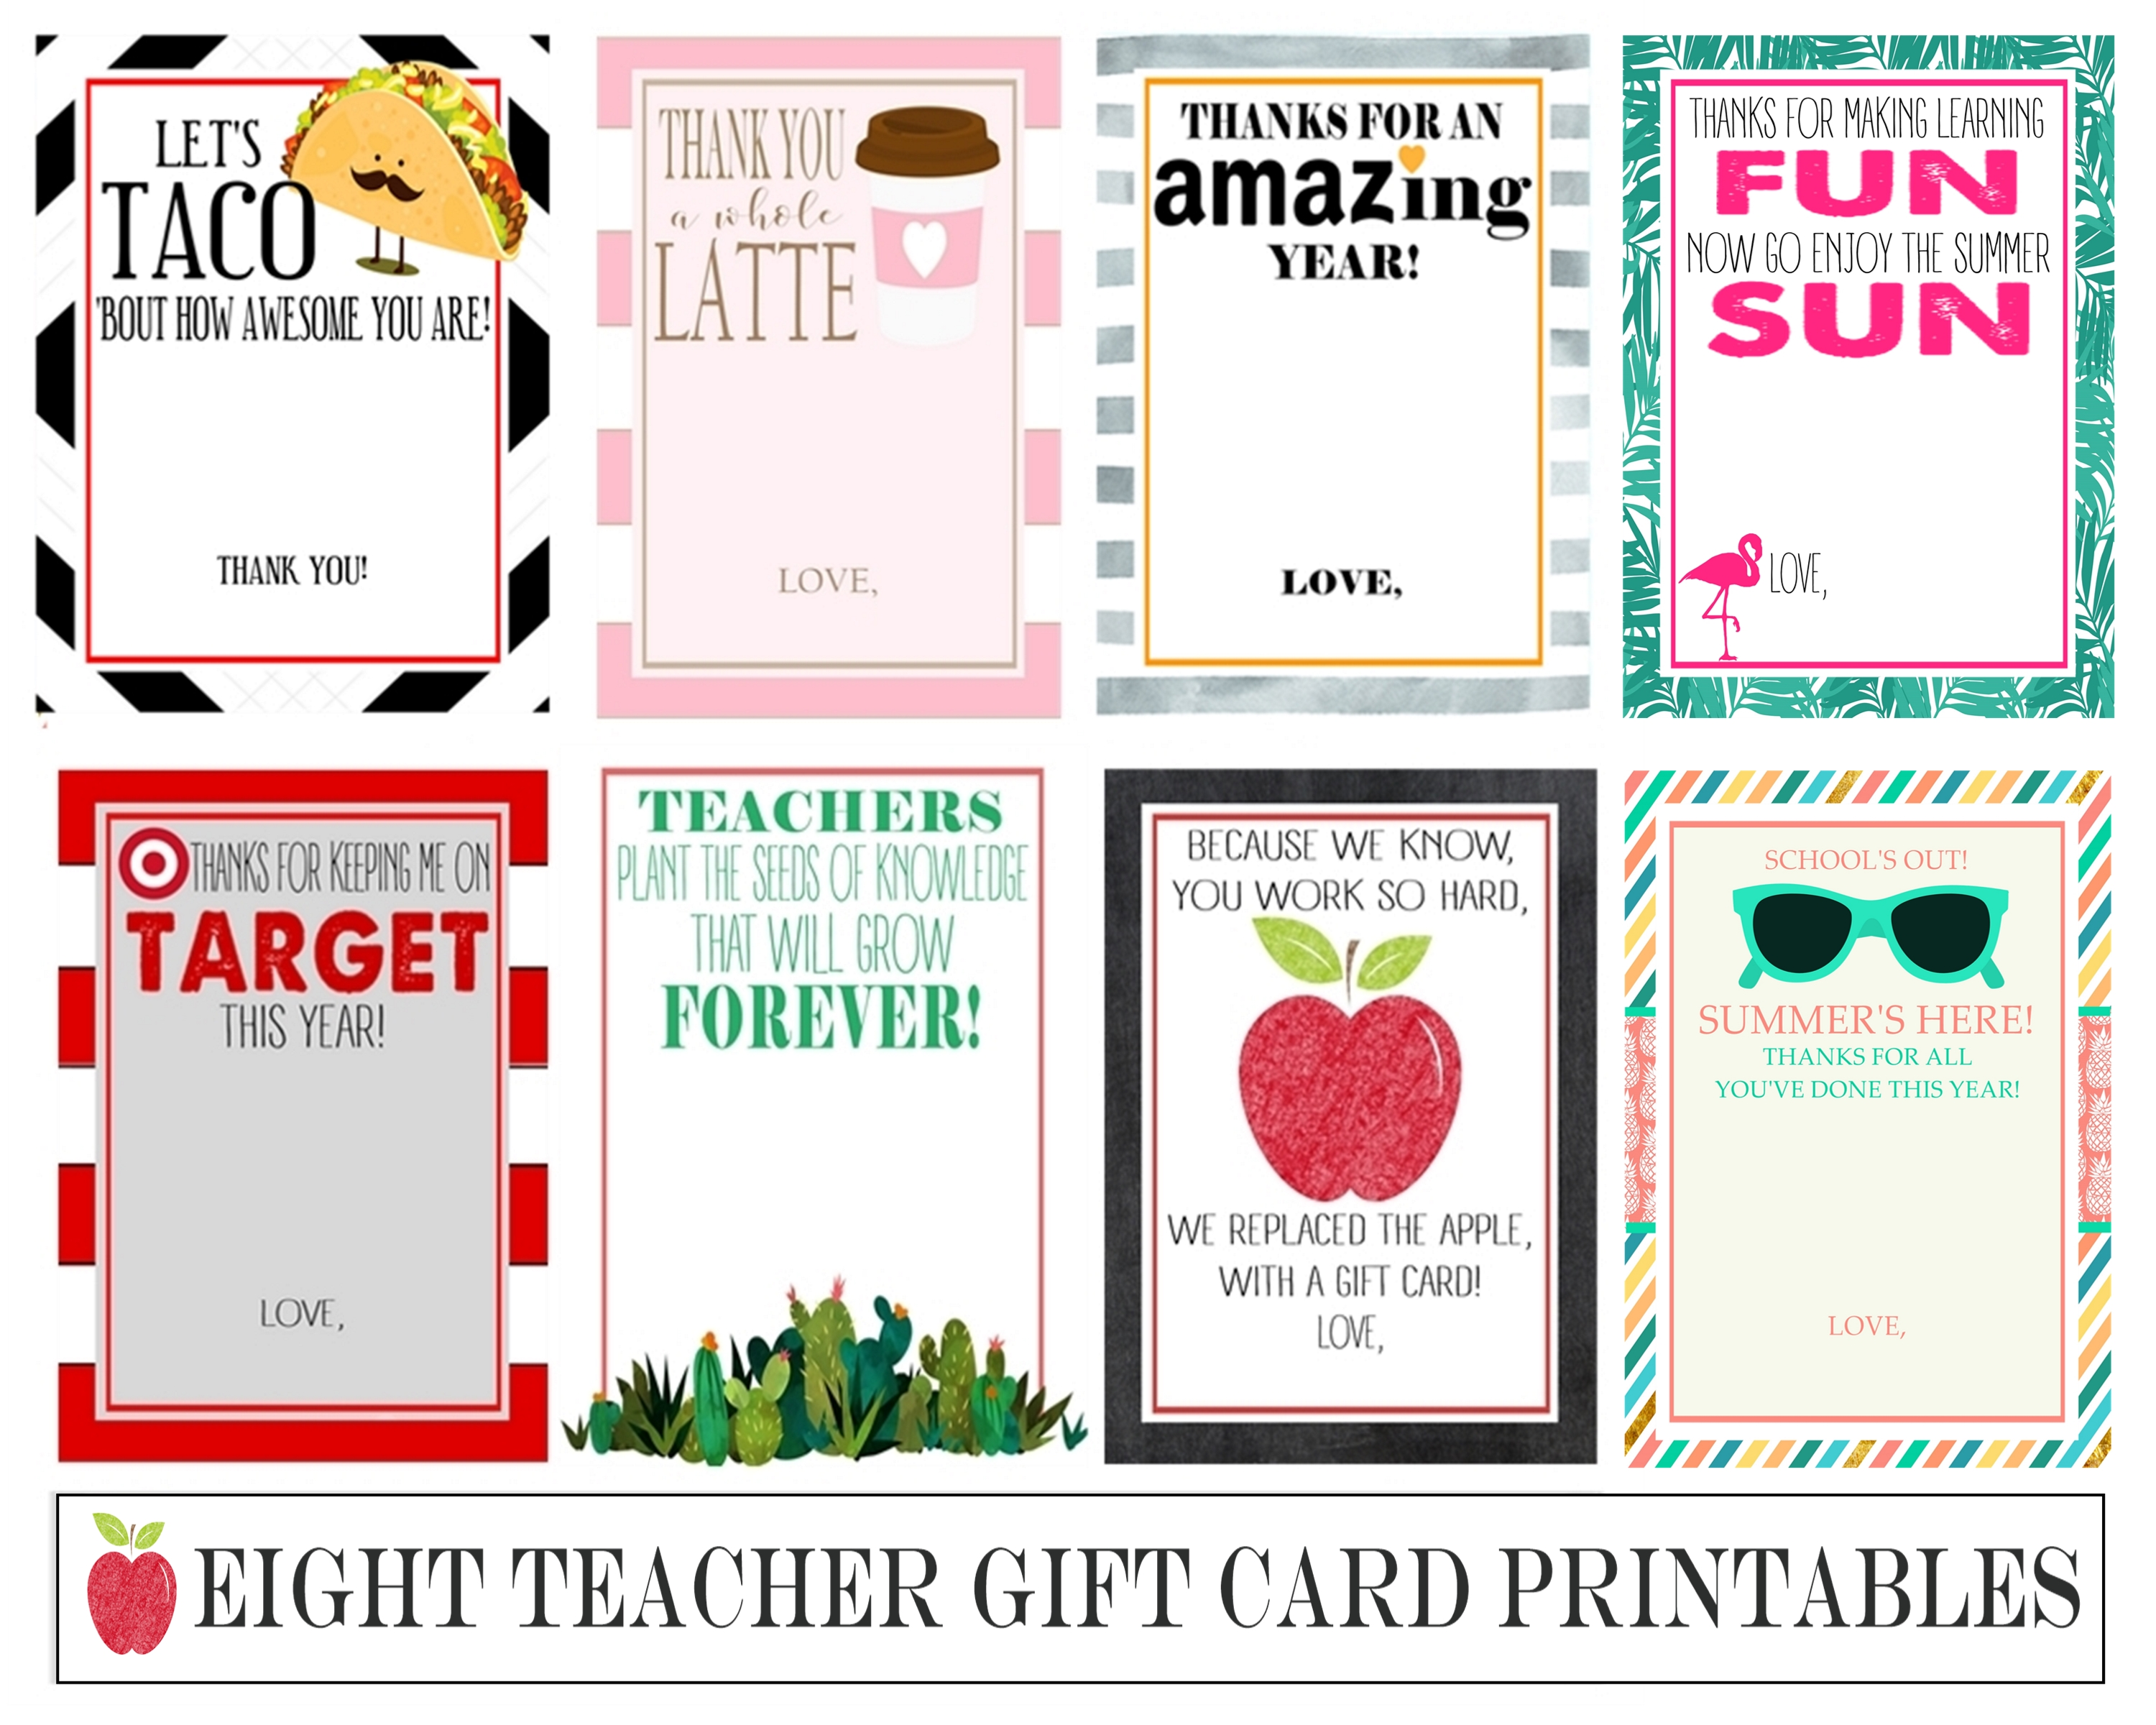 picture regarding Teacher Appreciation Cards Printable referred to as 8 Quick Obtain Trainer Present Card Printables - Crisp